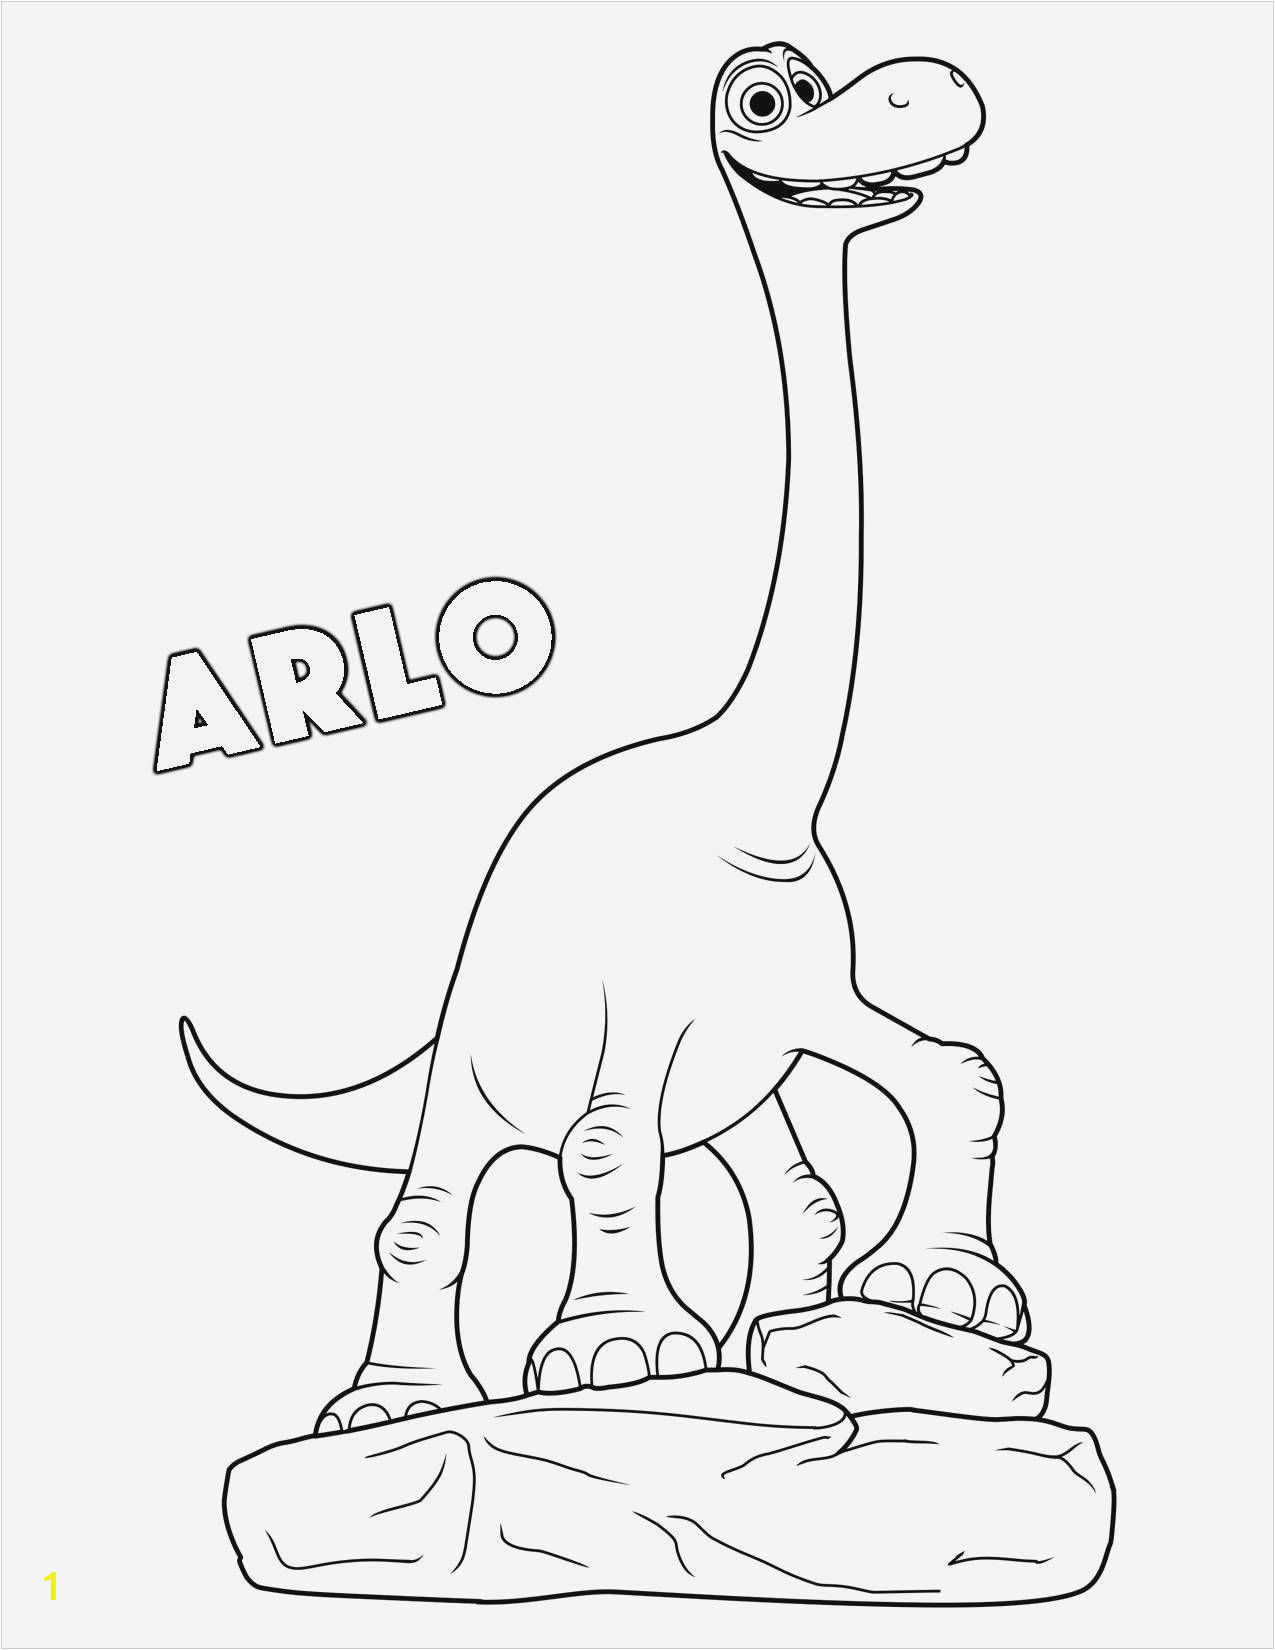 Zoo Animal Coloring Pages for Preschool Free Printable Animal Coloring Pages Unique ¢–· Childrens